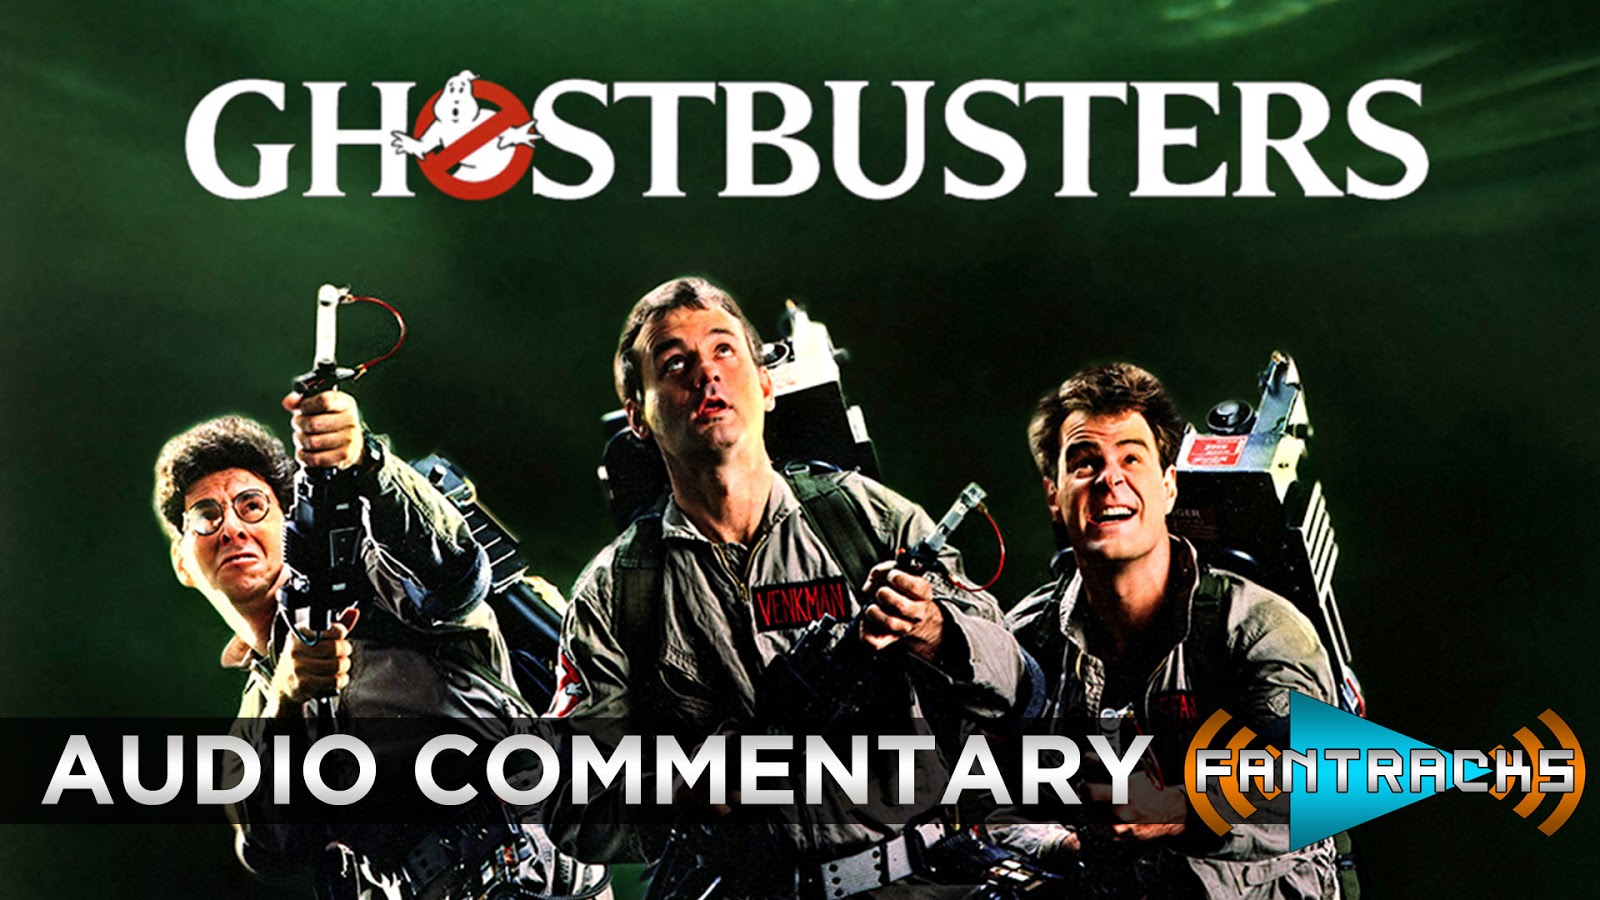 FanTracks Ghostbusters audio commentary